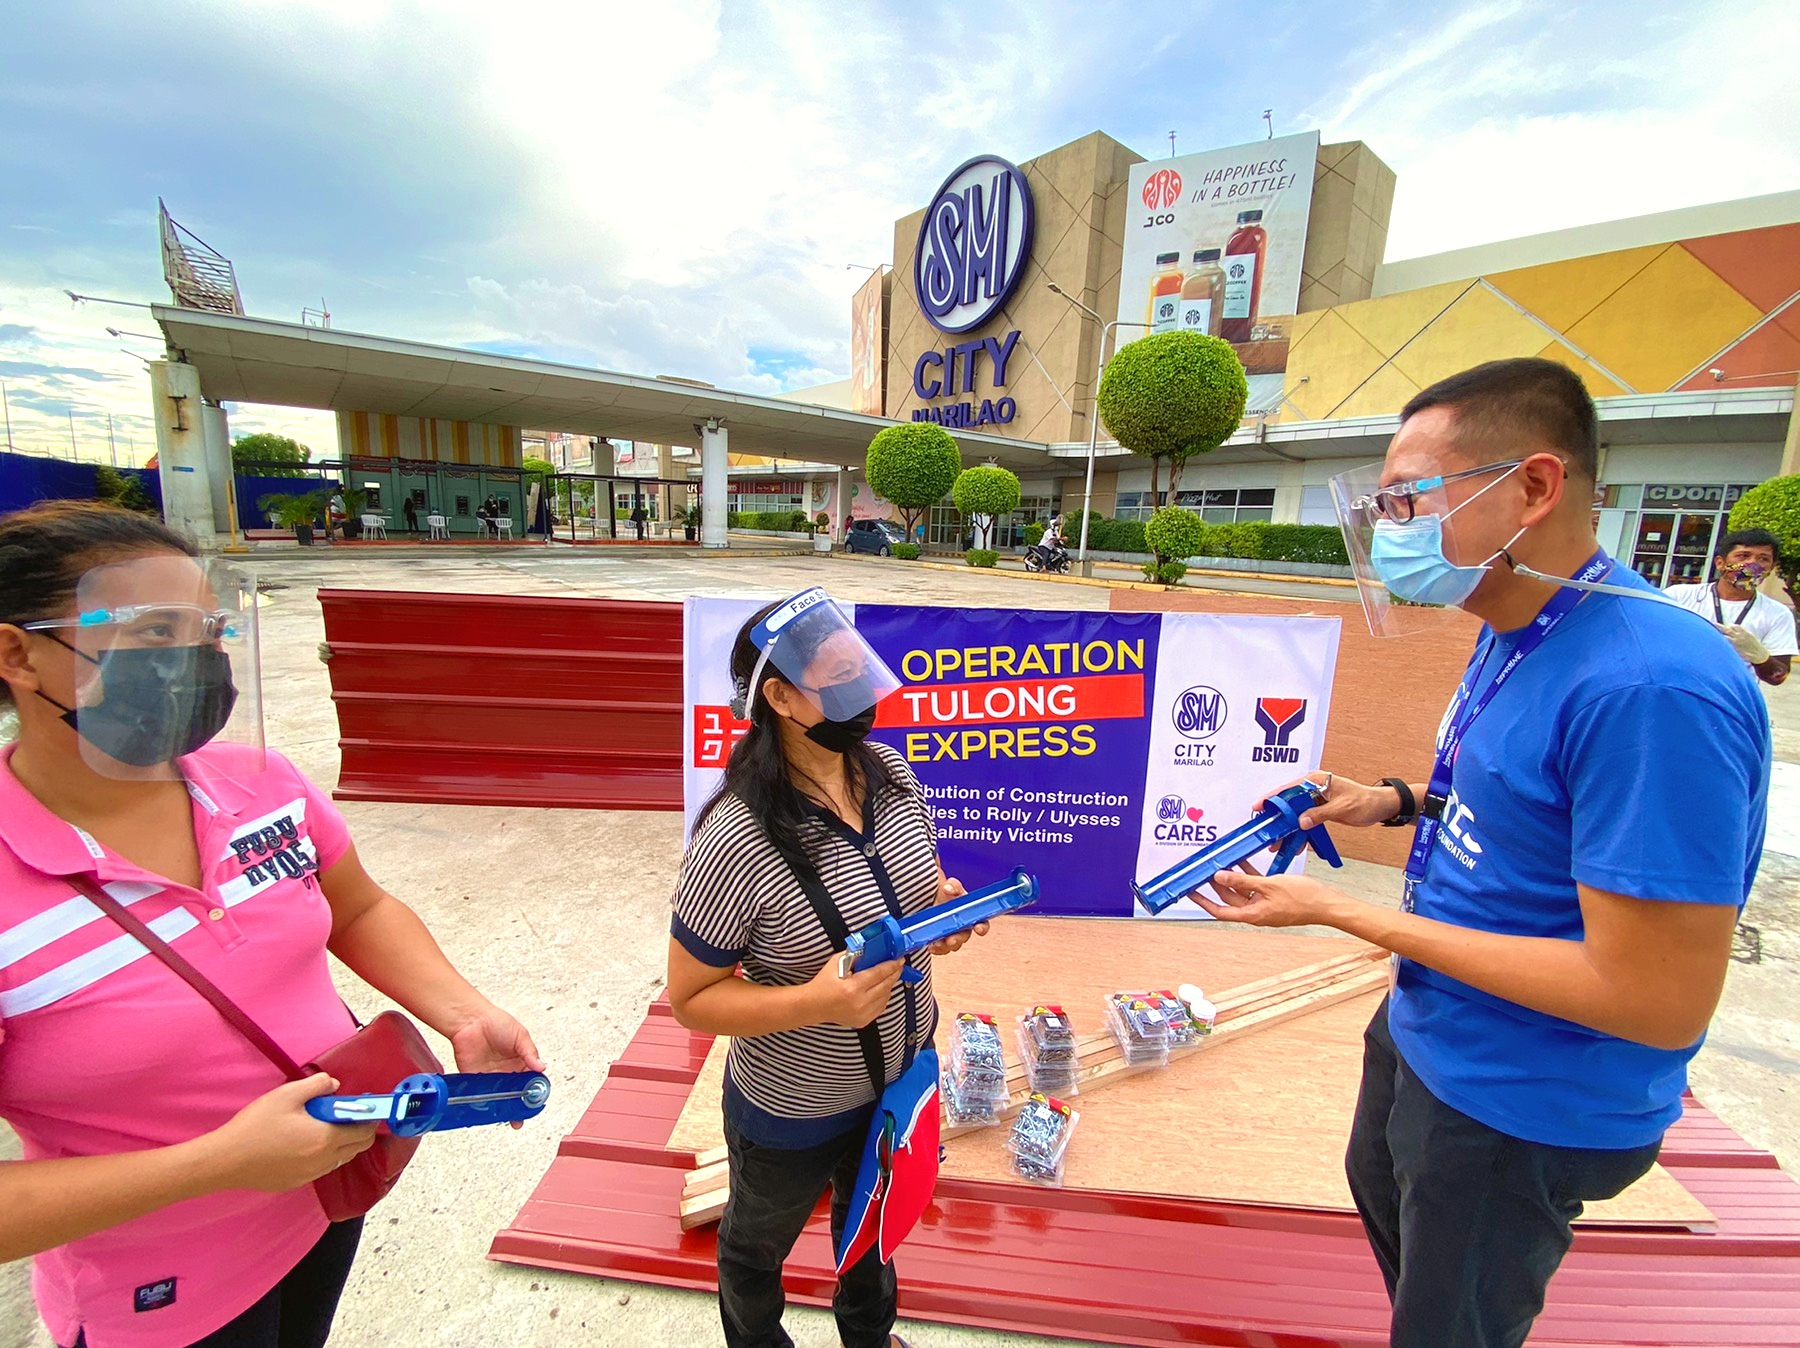 Uniqlo through SM Foundation and SM City Marilao donated housing materials and construction supplies to beneficiaries in Bulacan communities